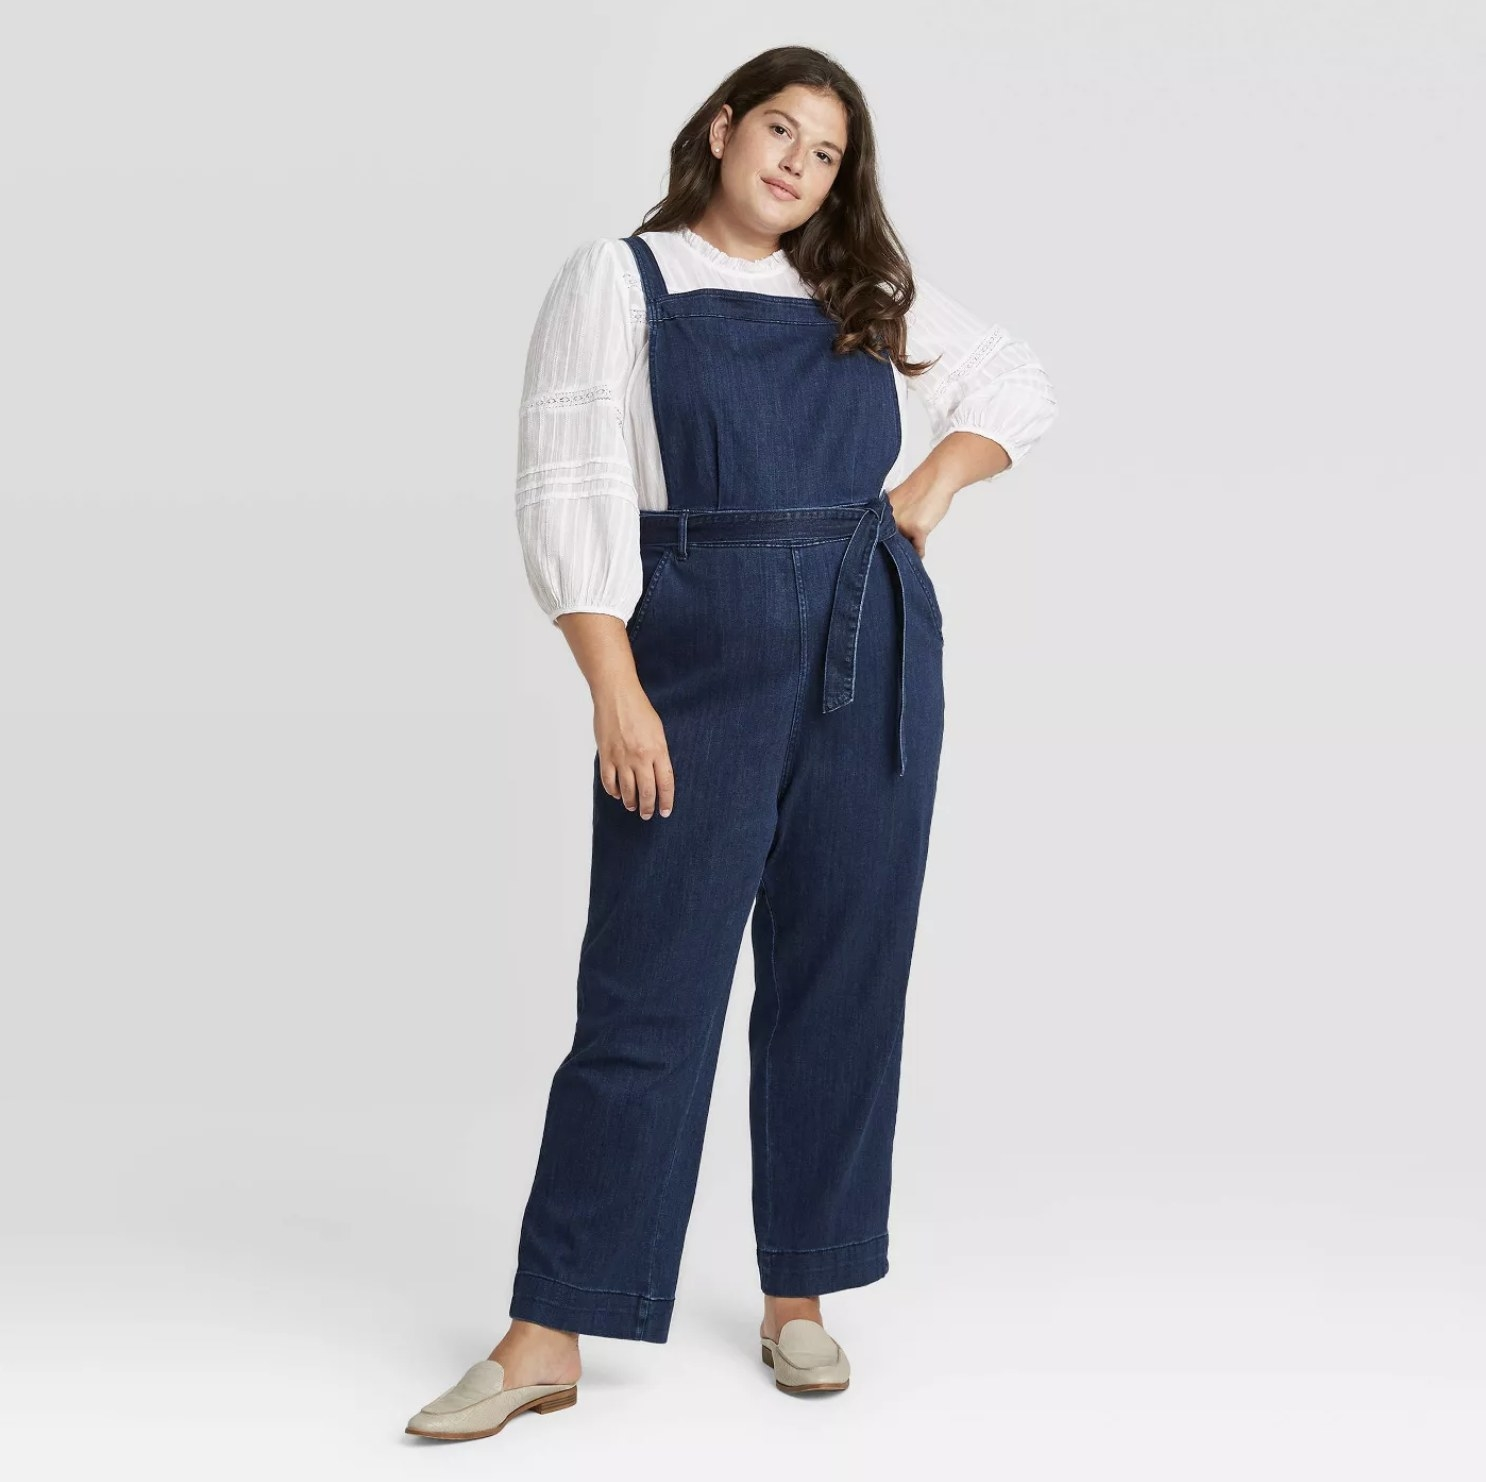 Model is wearing a dark wash denim overall with a tie front detail and white peasant top underneath with cream loafers